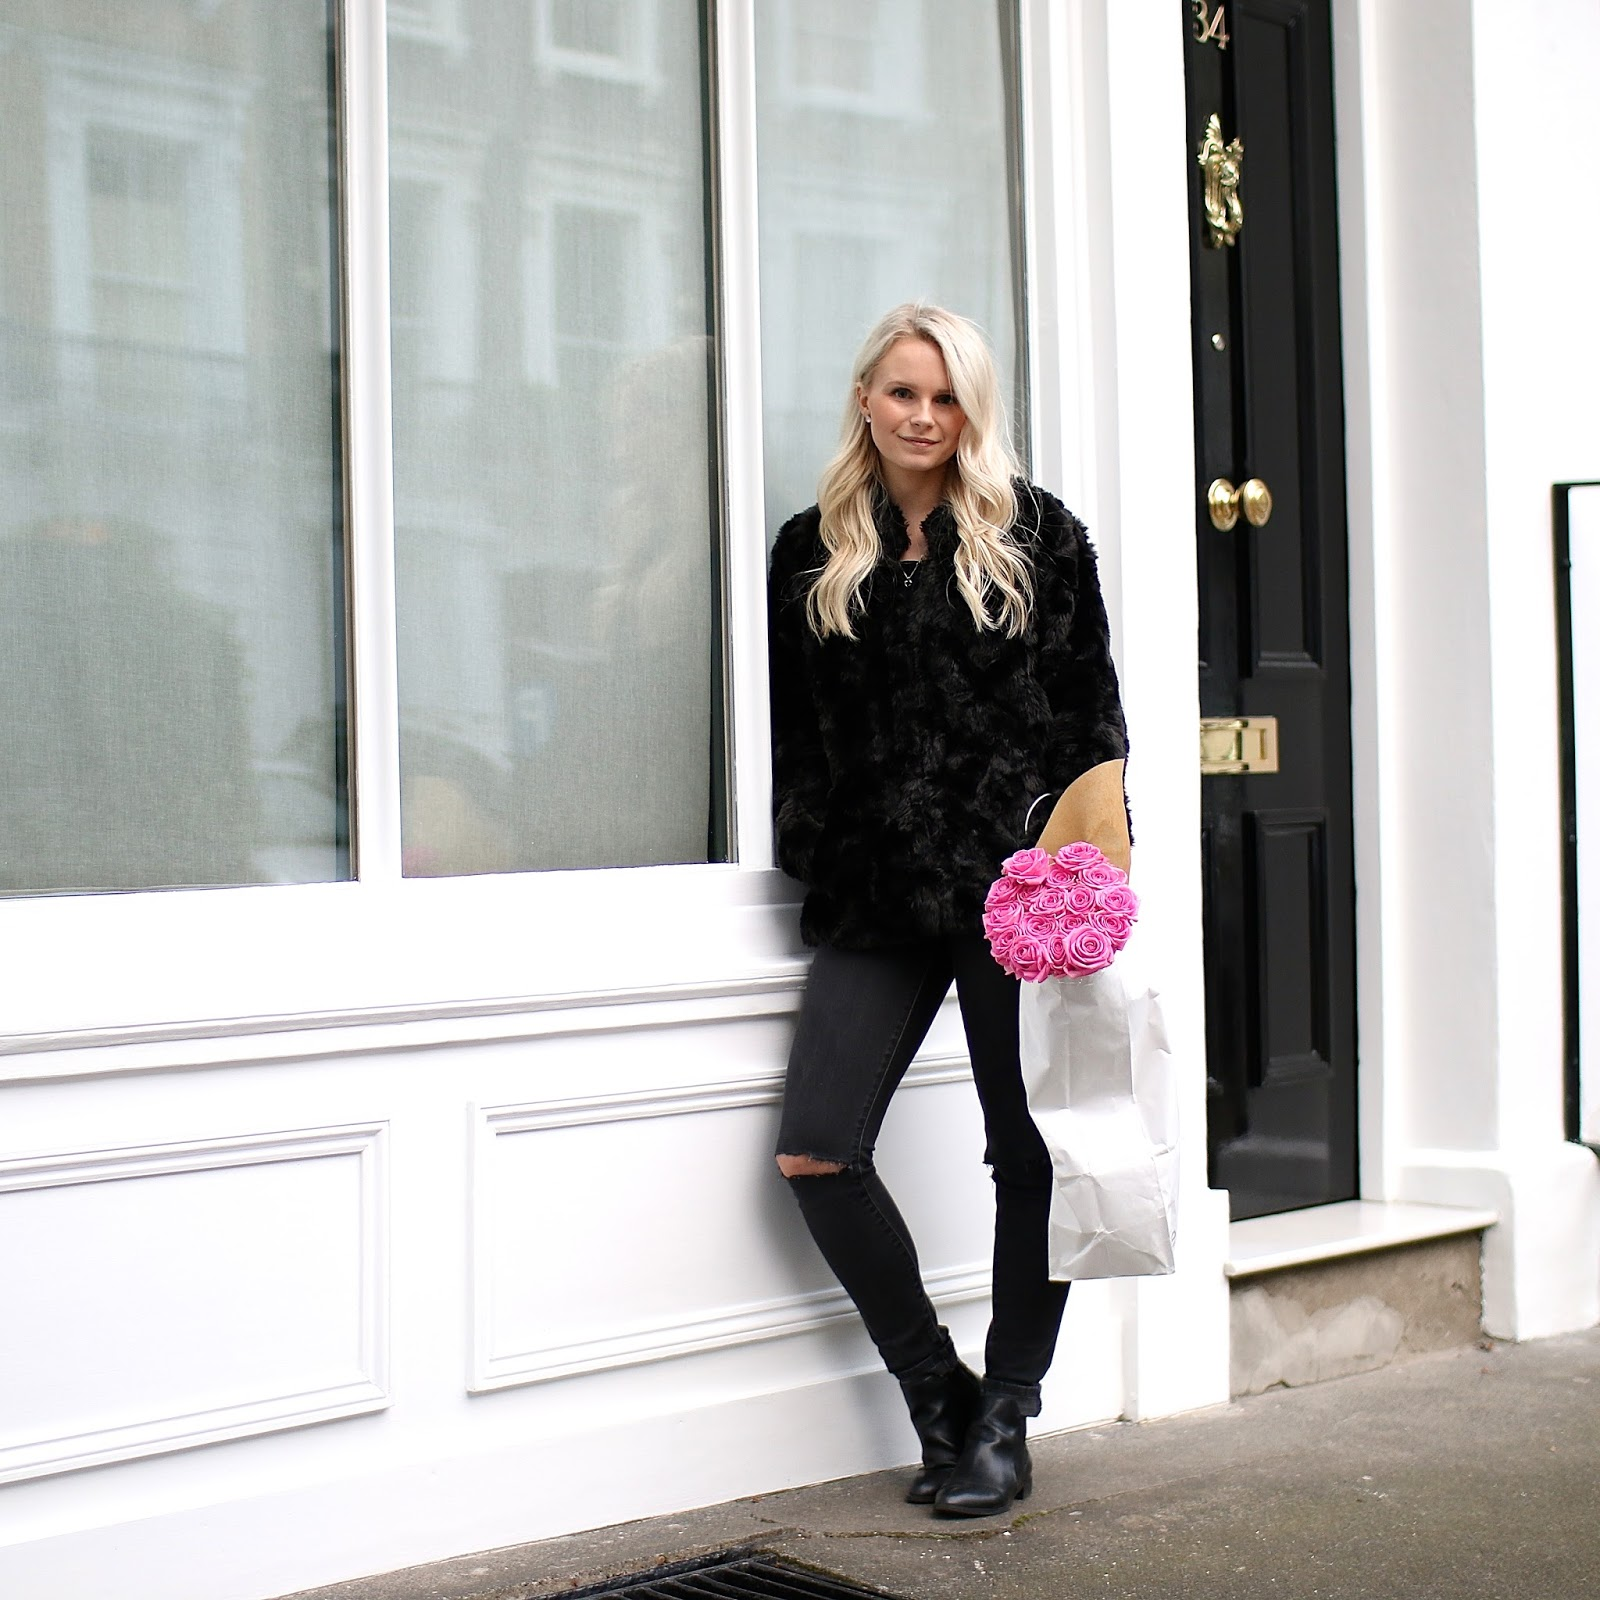 a women wearing an all black outfit and faux fur coat stands near portobello market with pink roses